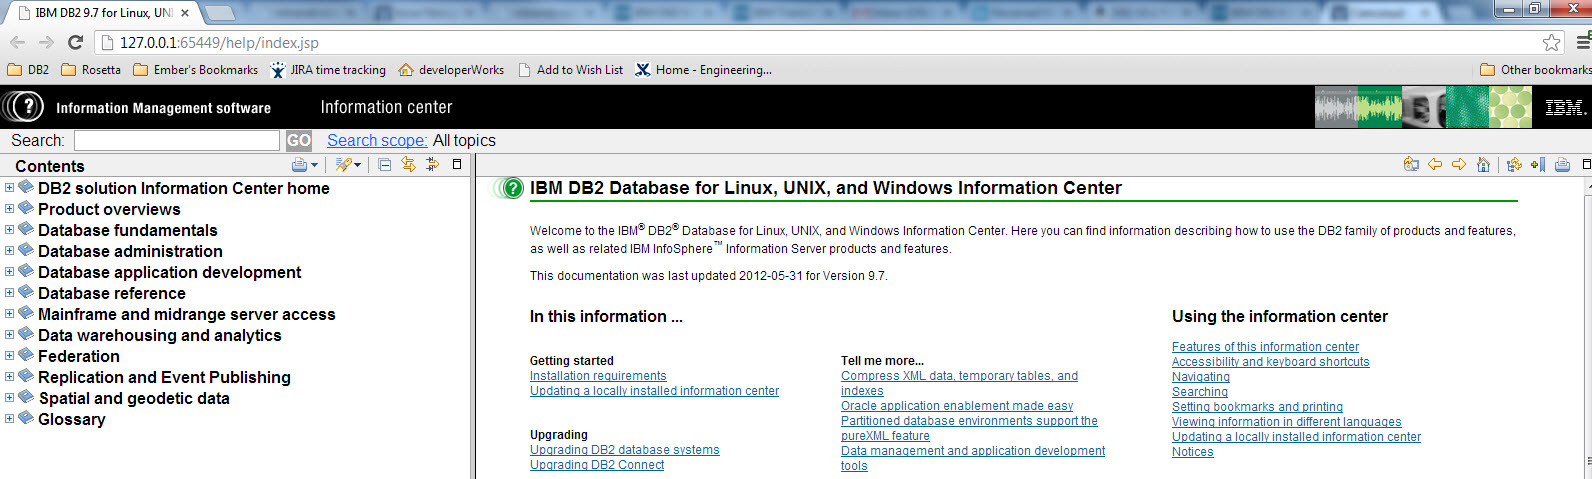 Screen shot of the locally installed DB2 9.7 Info Center